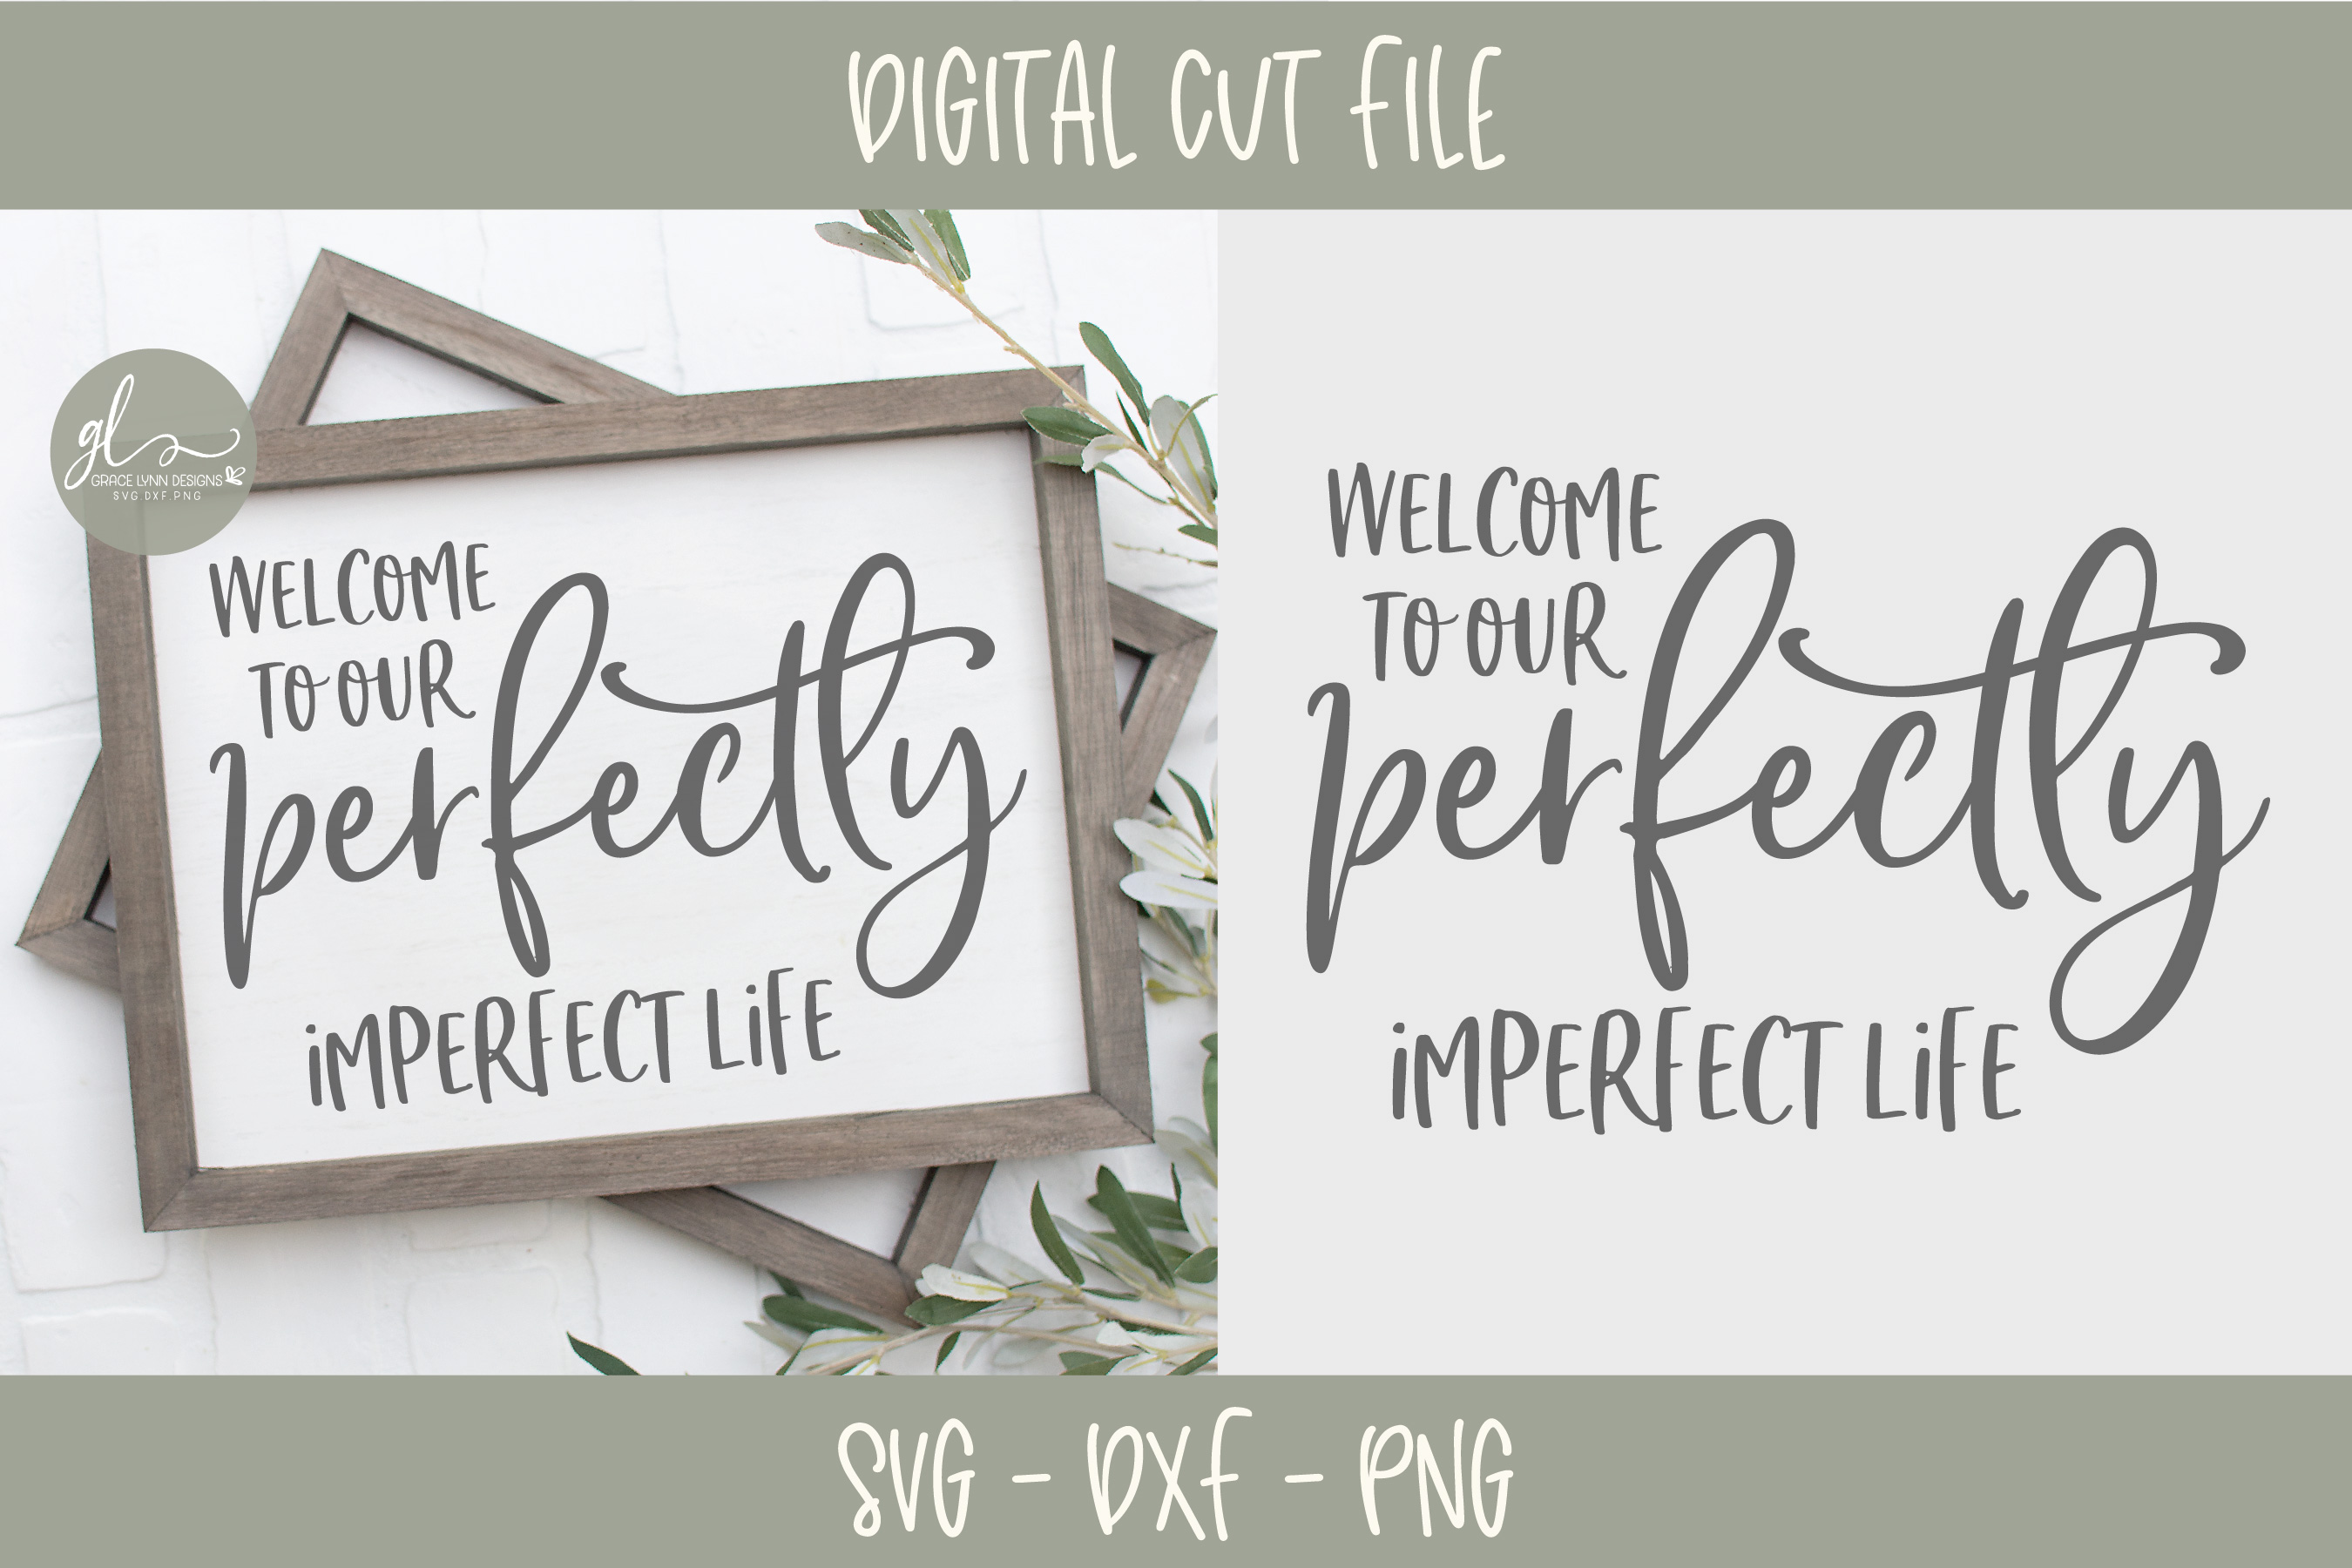 Welcome To Our Perfectly Imperfect Life - SVG Cut File example image 1